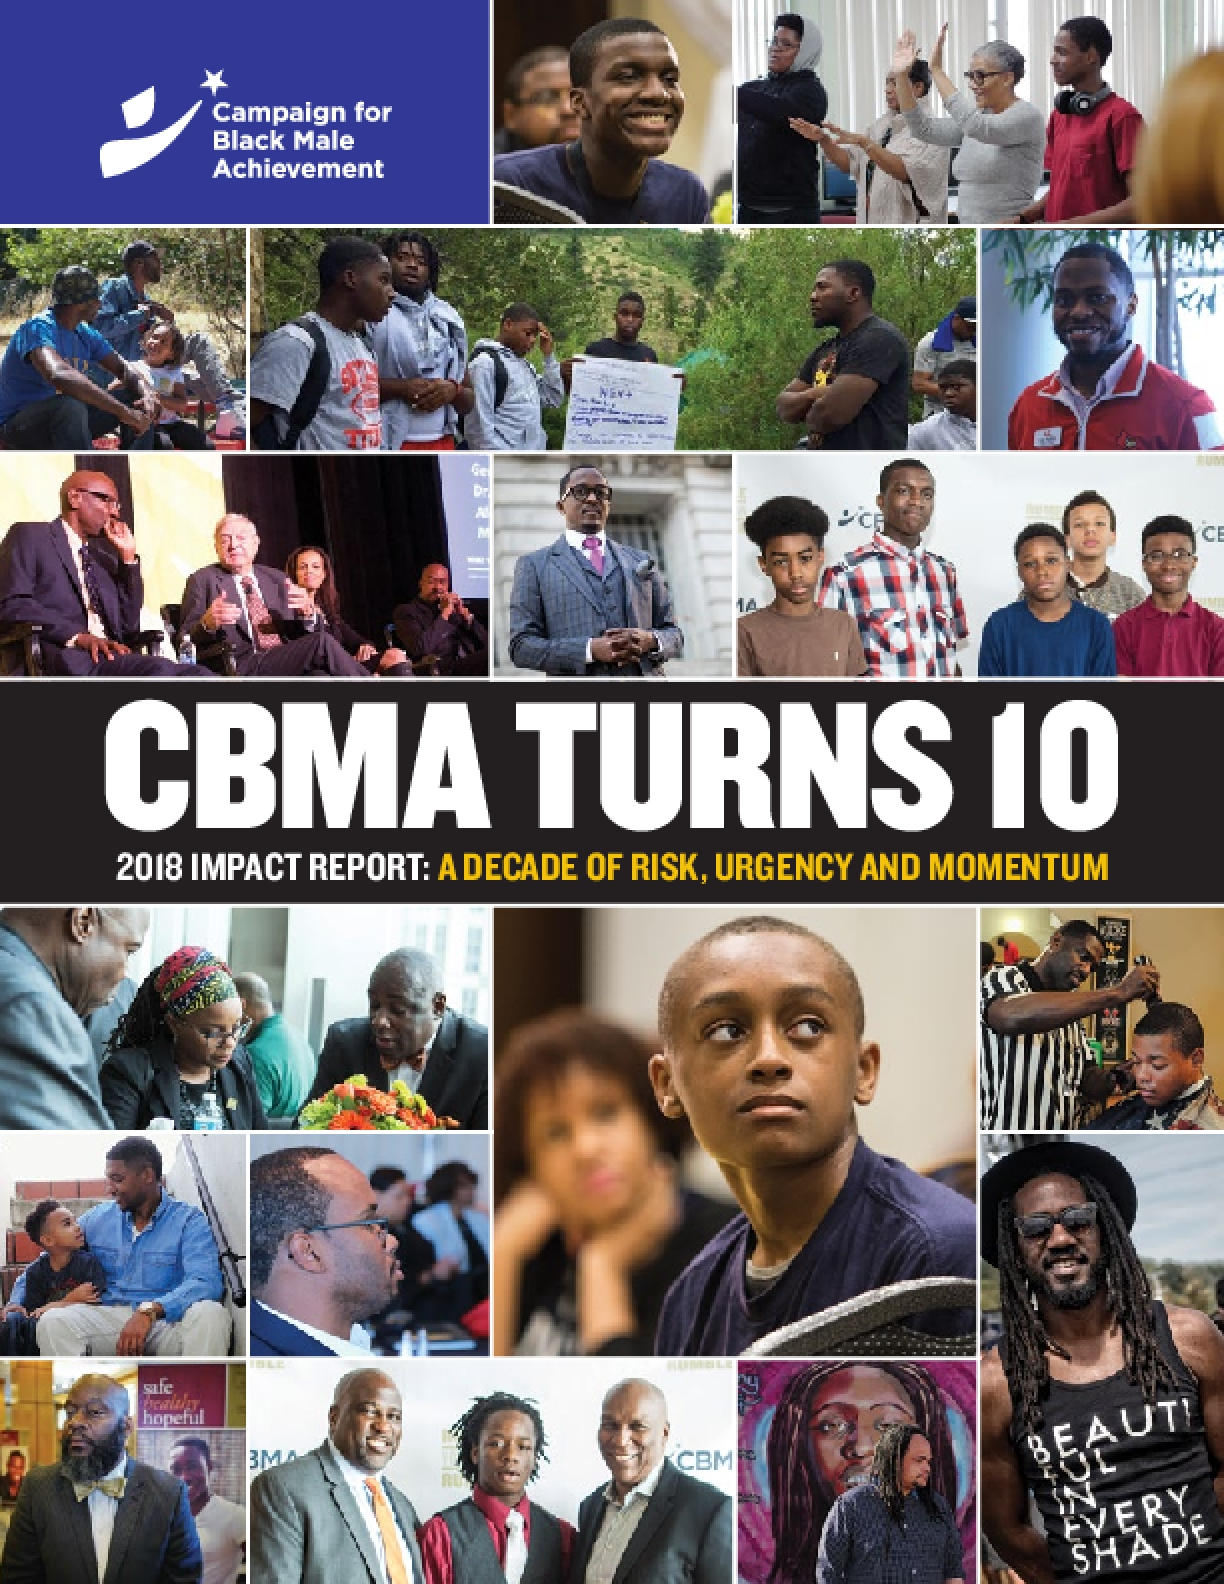 CBMA Turns 10, 2018 Impact Report: A Decade of Risk, Urgency, and Momentum